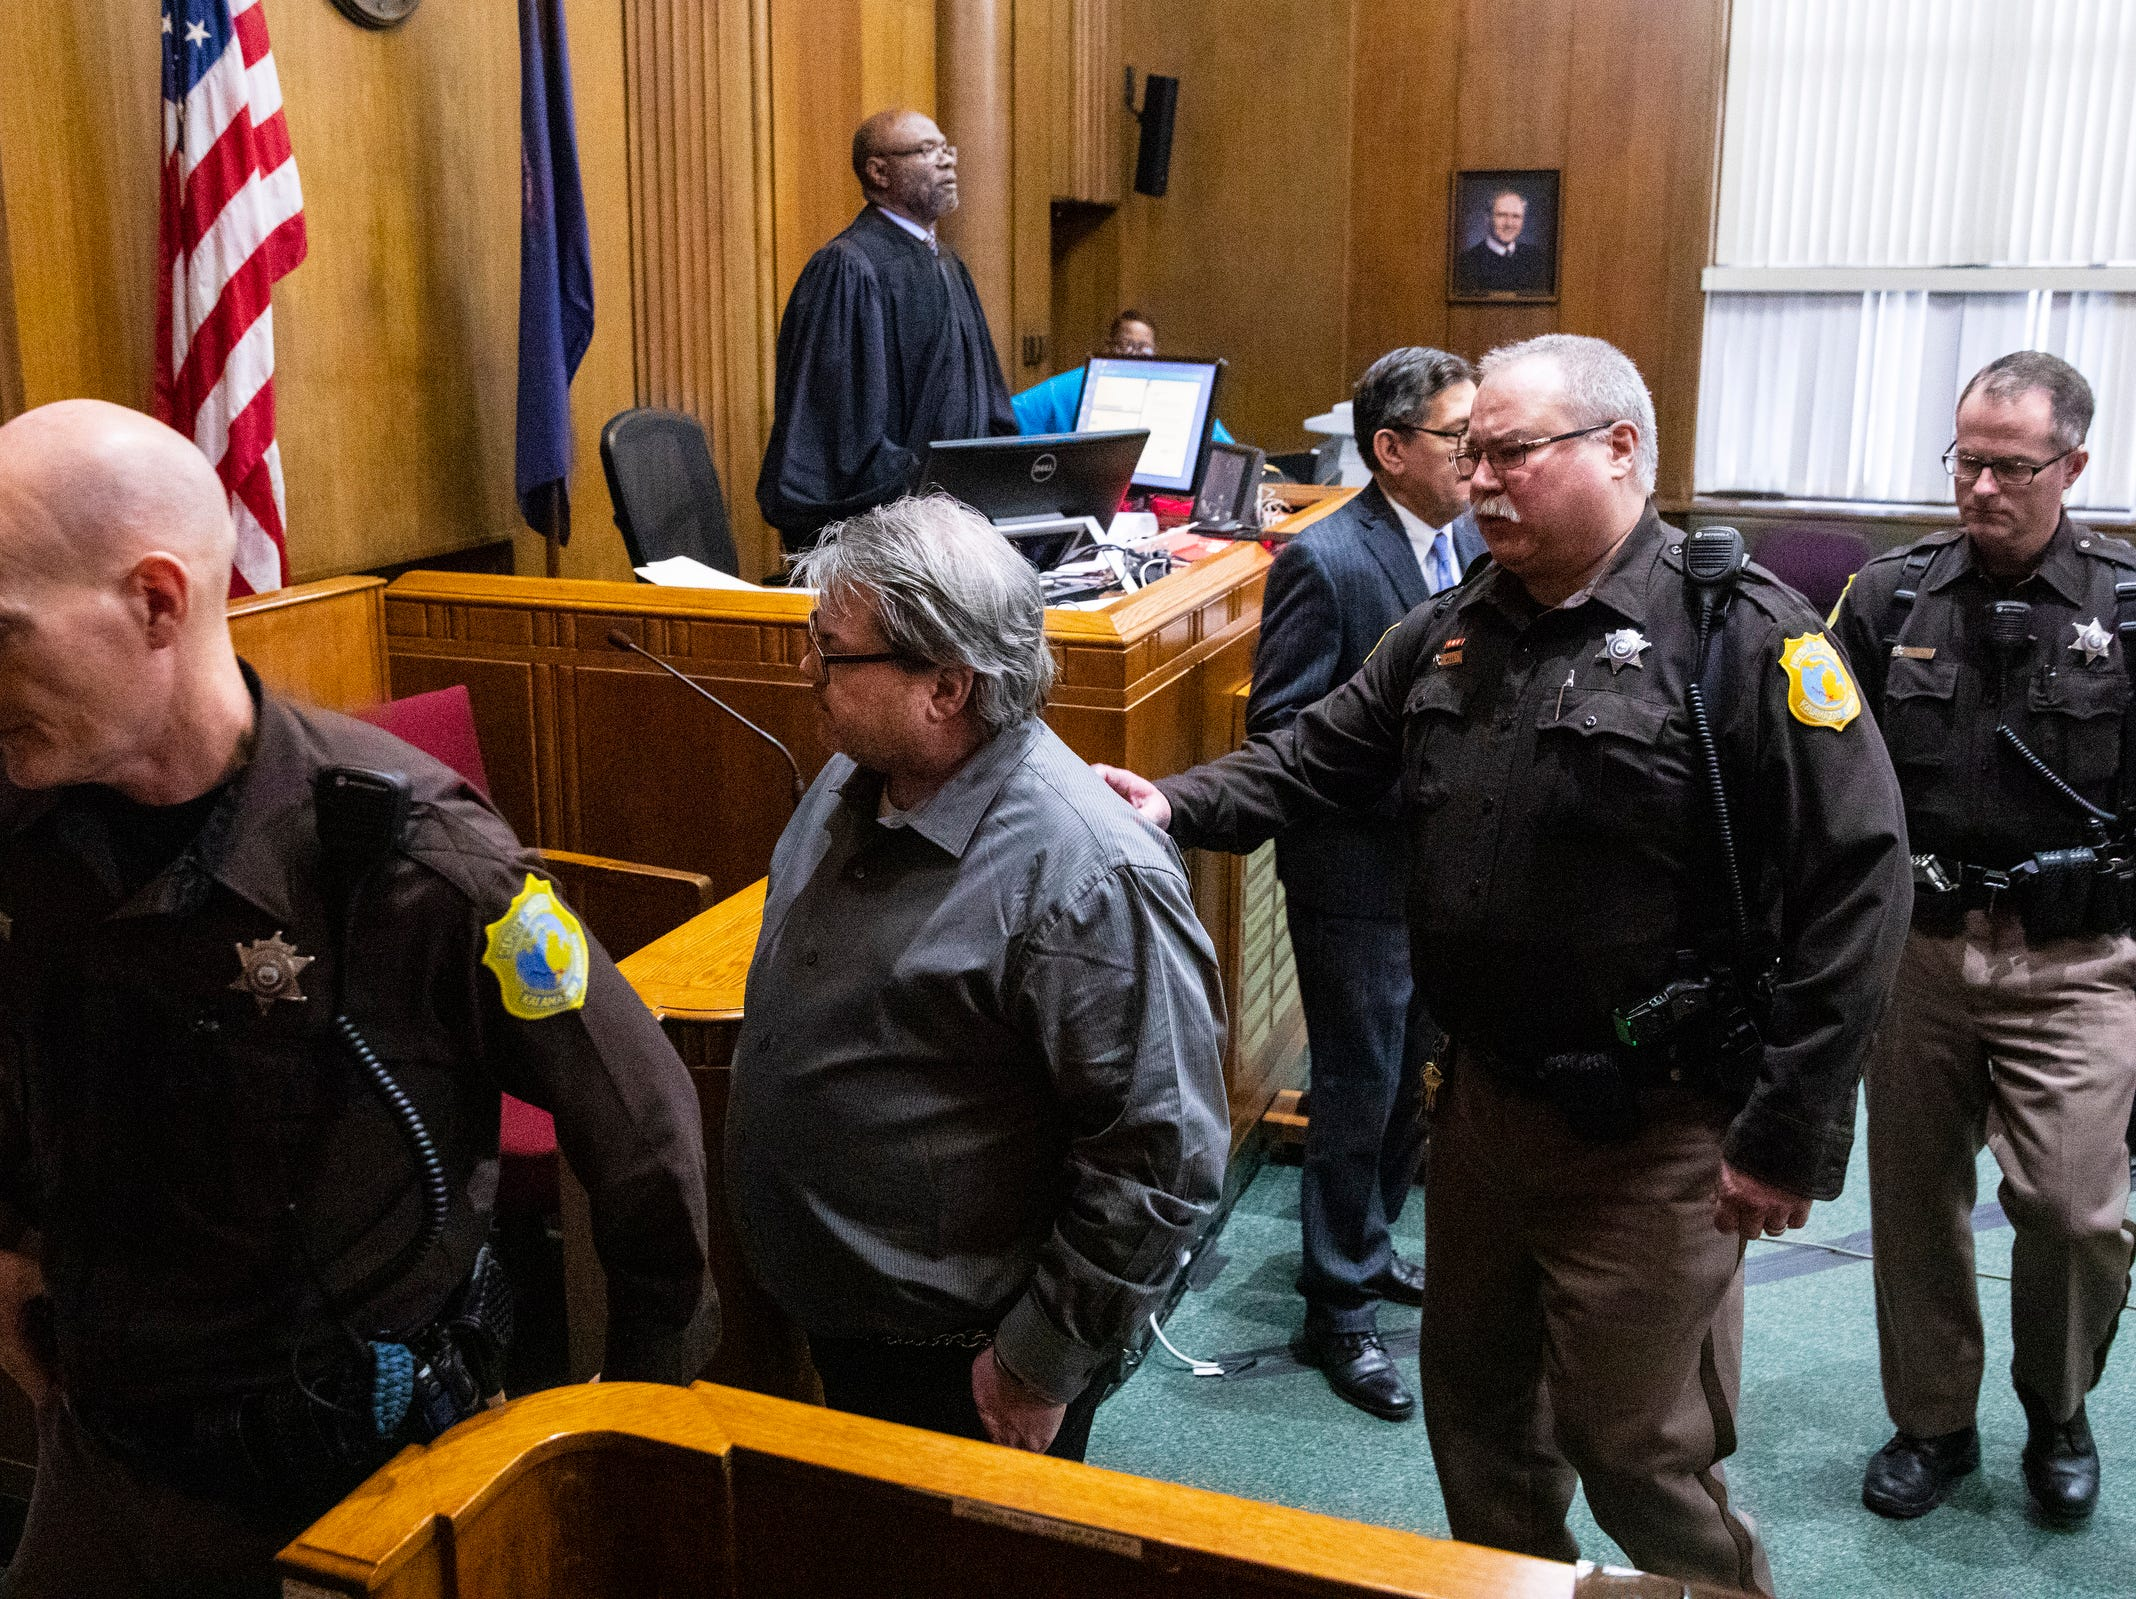 Jason Dalton is led out of the court room after he plead guilty to six counts of murder and several other charges at the Kalamazoo County Courthouse on Monday, Jan. 7, 2019 in Kalamazoo, Michigan.  Dalton, who was driving for Uber at the time shot eight people killing six of them, on Saturday, Feb. 20, 2016. Opening statements in the trial were scheduled to begin Tuesday, Jan. 8. (Joel Bissell | MLive.com)